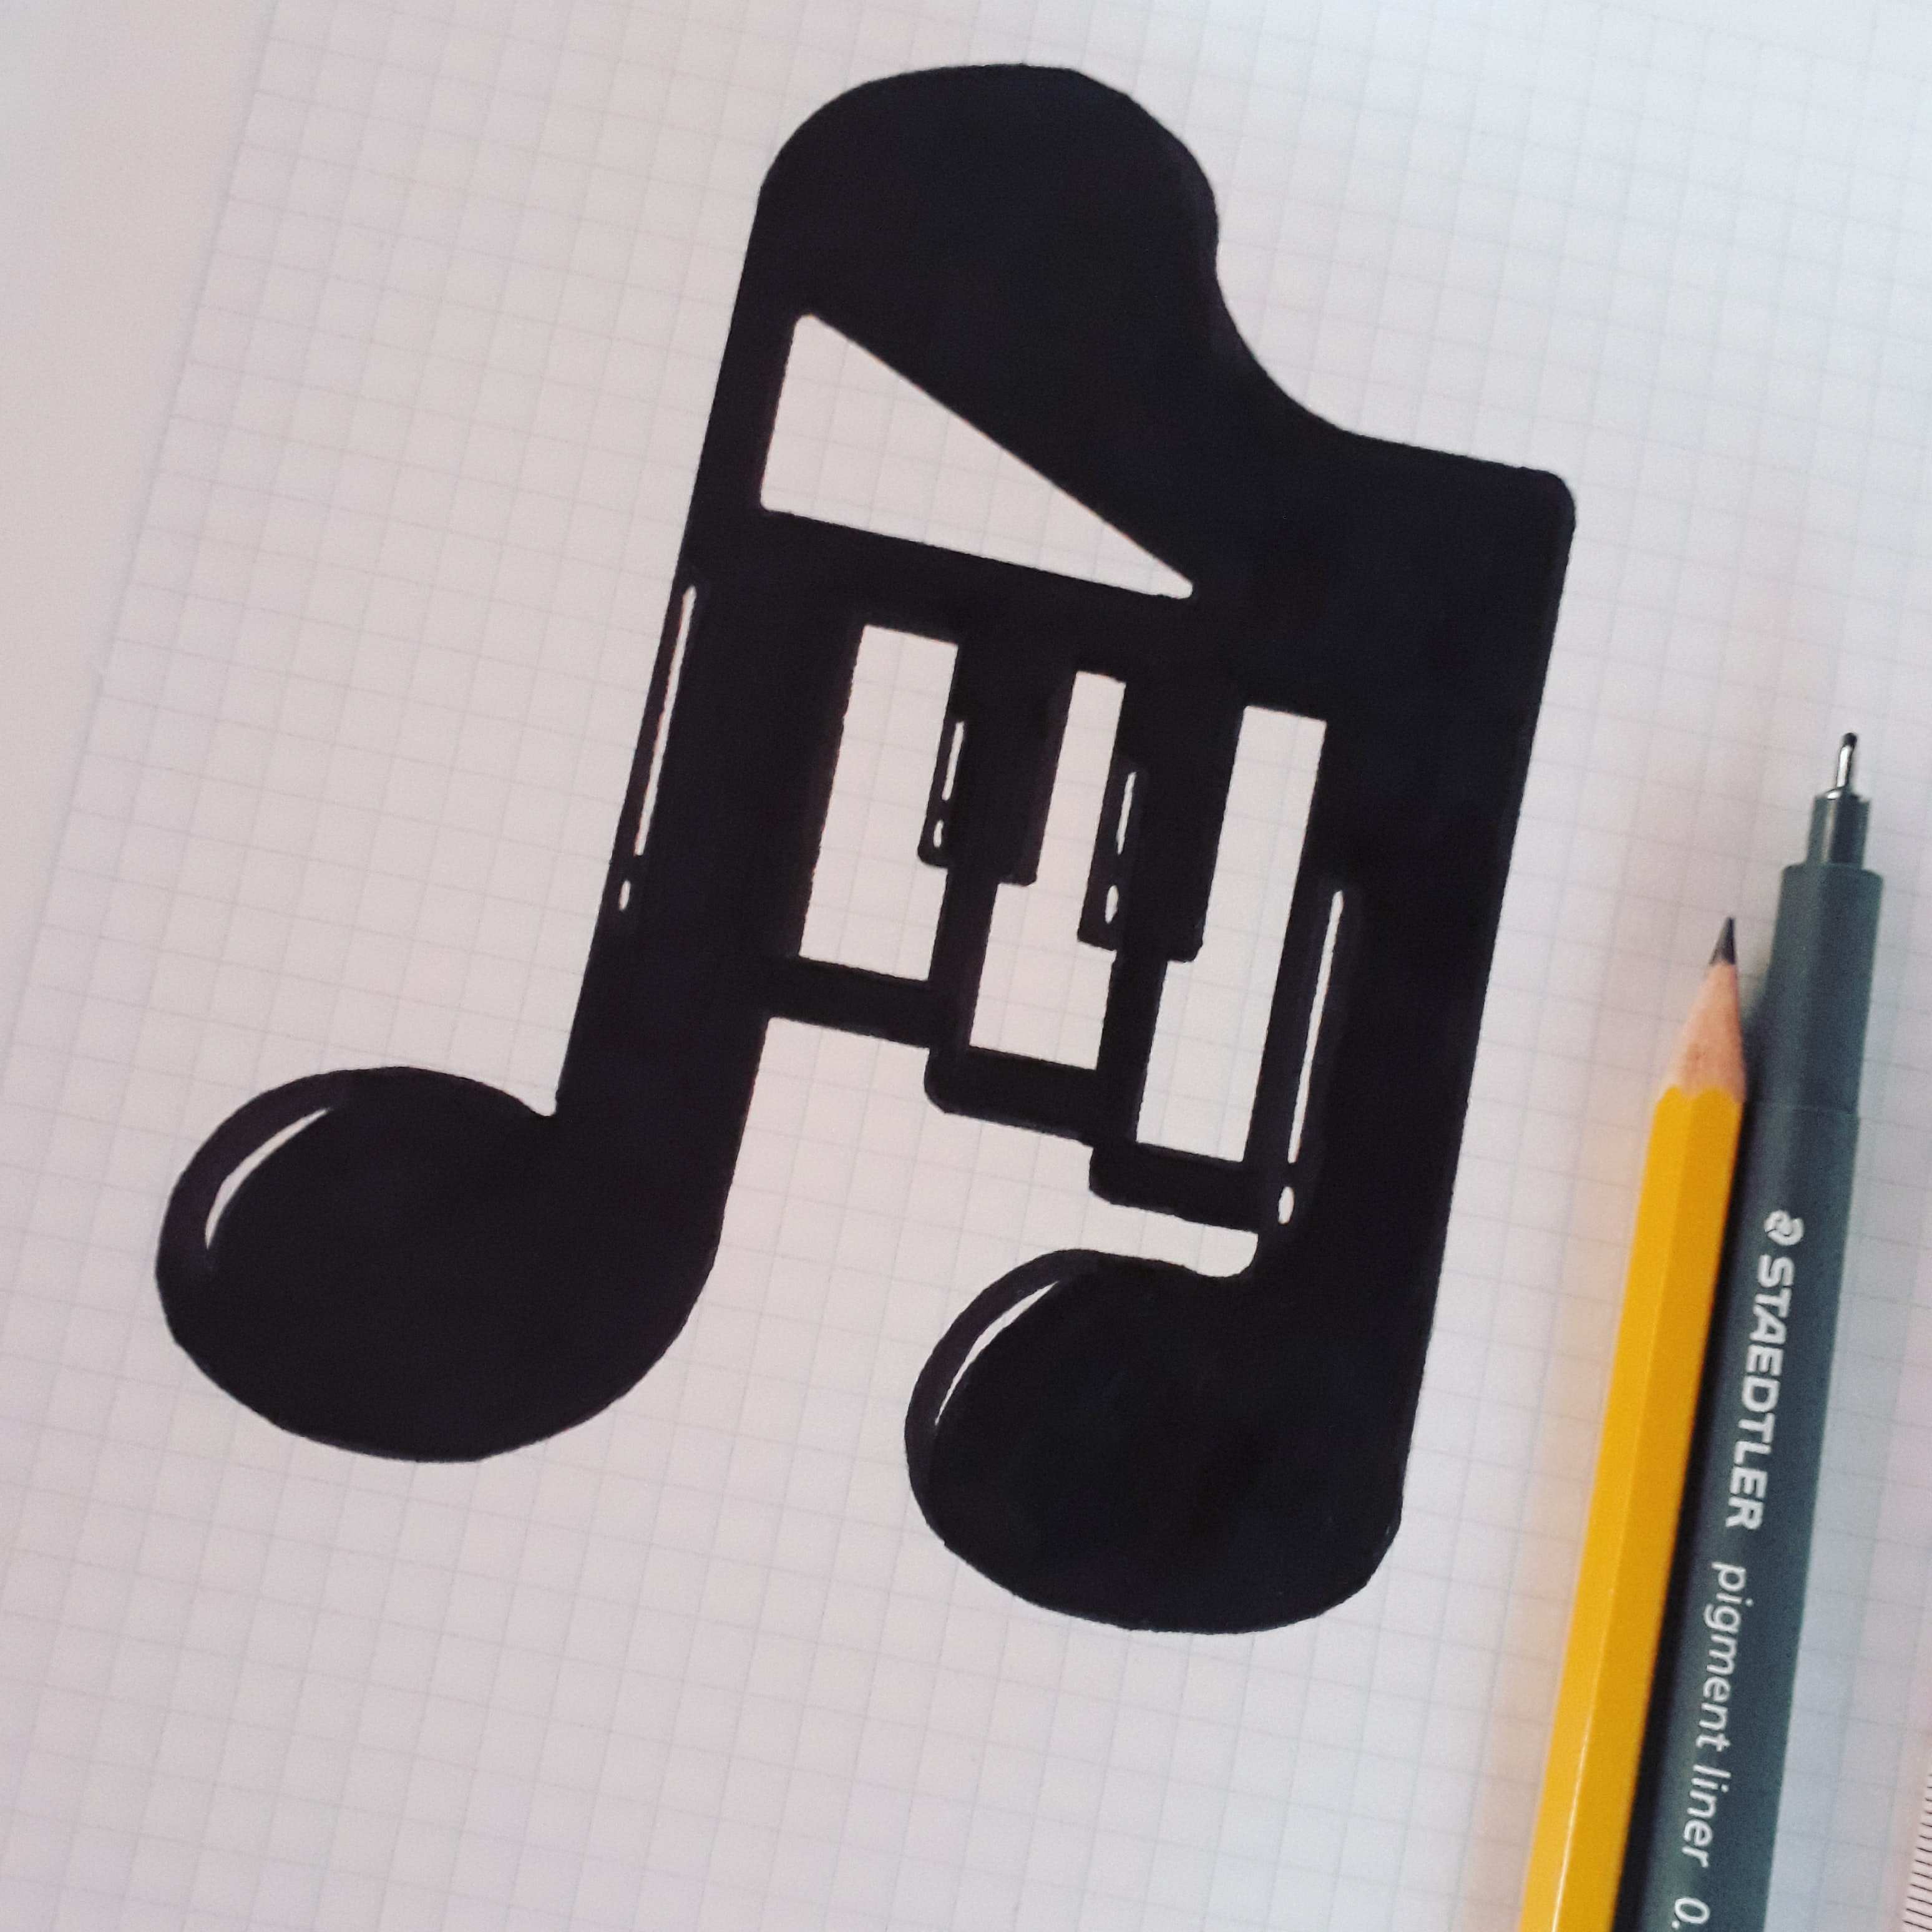 A music note with piano keys inside it, drawn on graph paper with a pencil and black pen.